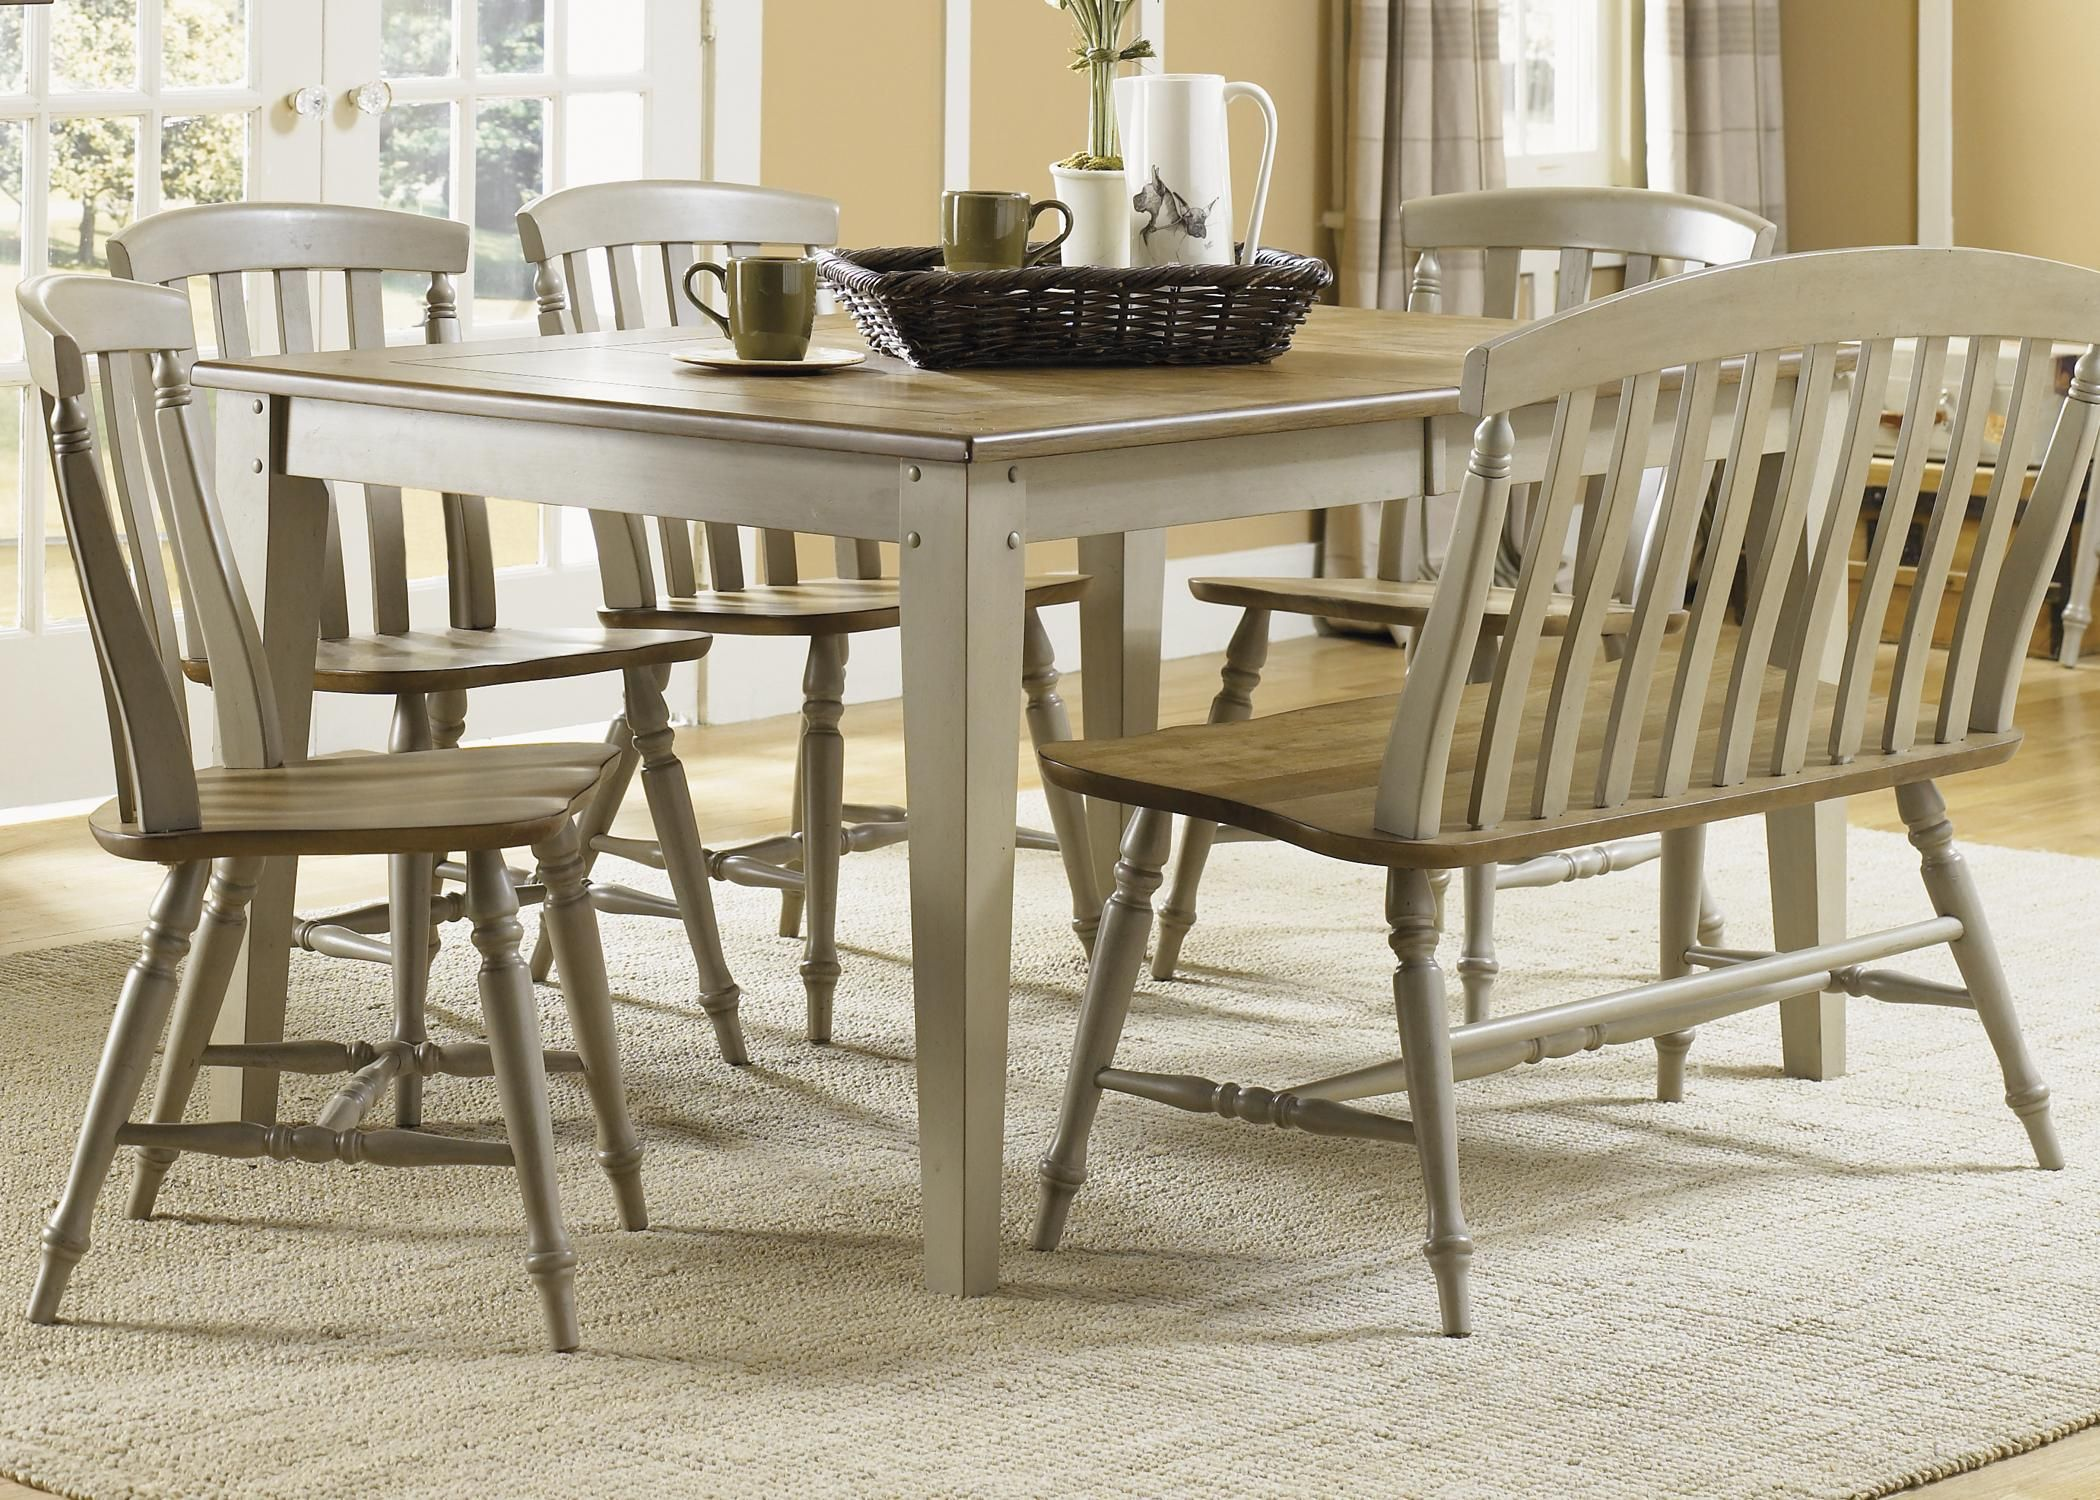 Al Fresco Driftwood And Taupeliberty Furniture  Fresco Simple 2 Chair Dining Room Set Inspiration